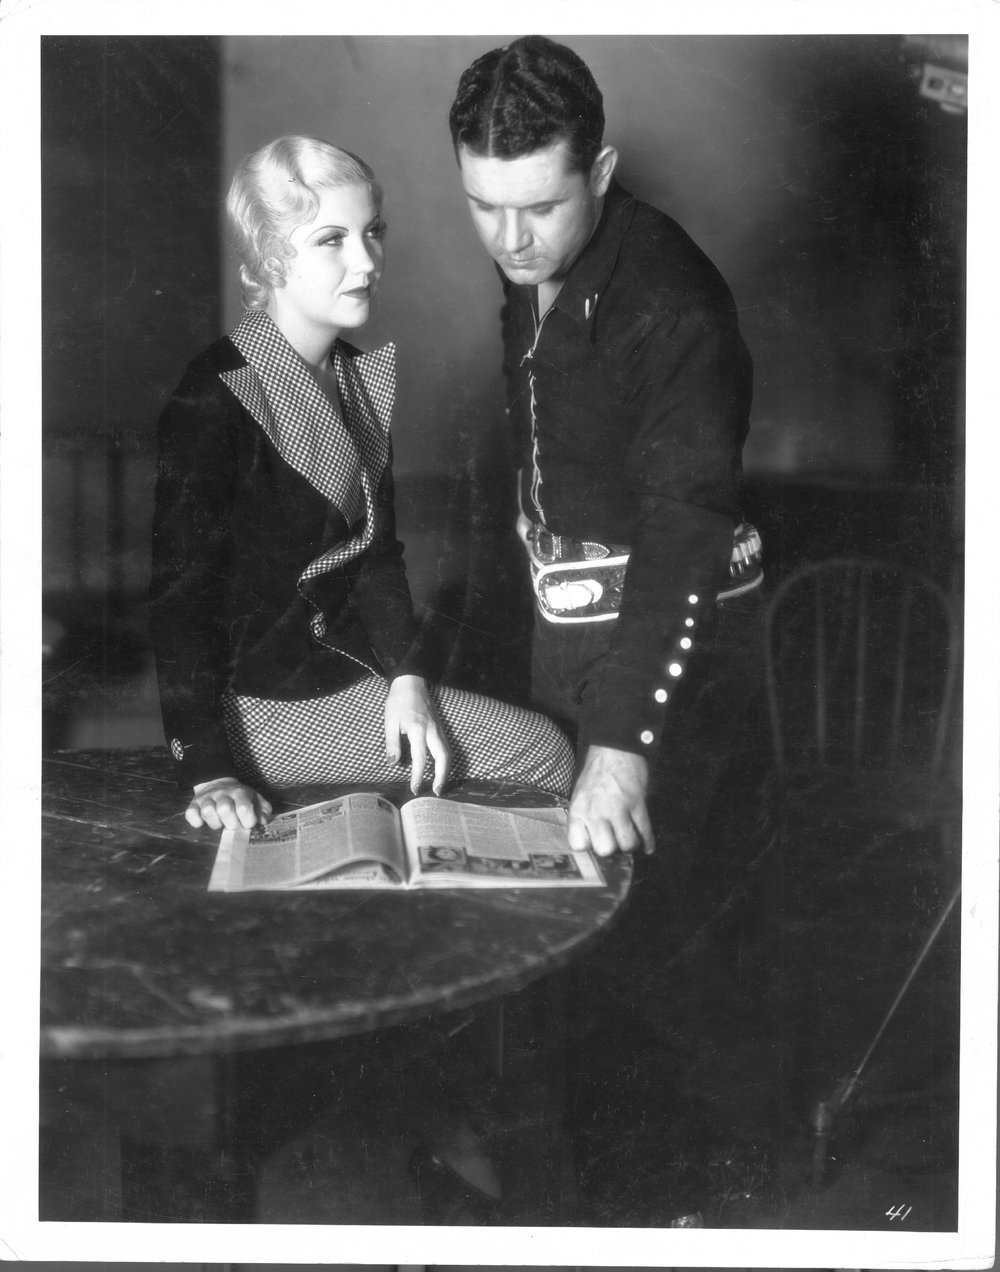 Reb Russell photo collection - Reb posed with one of his leading ladies.  Photo #6